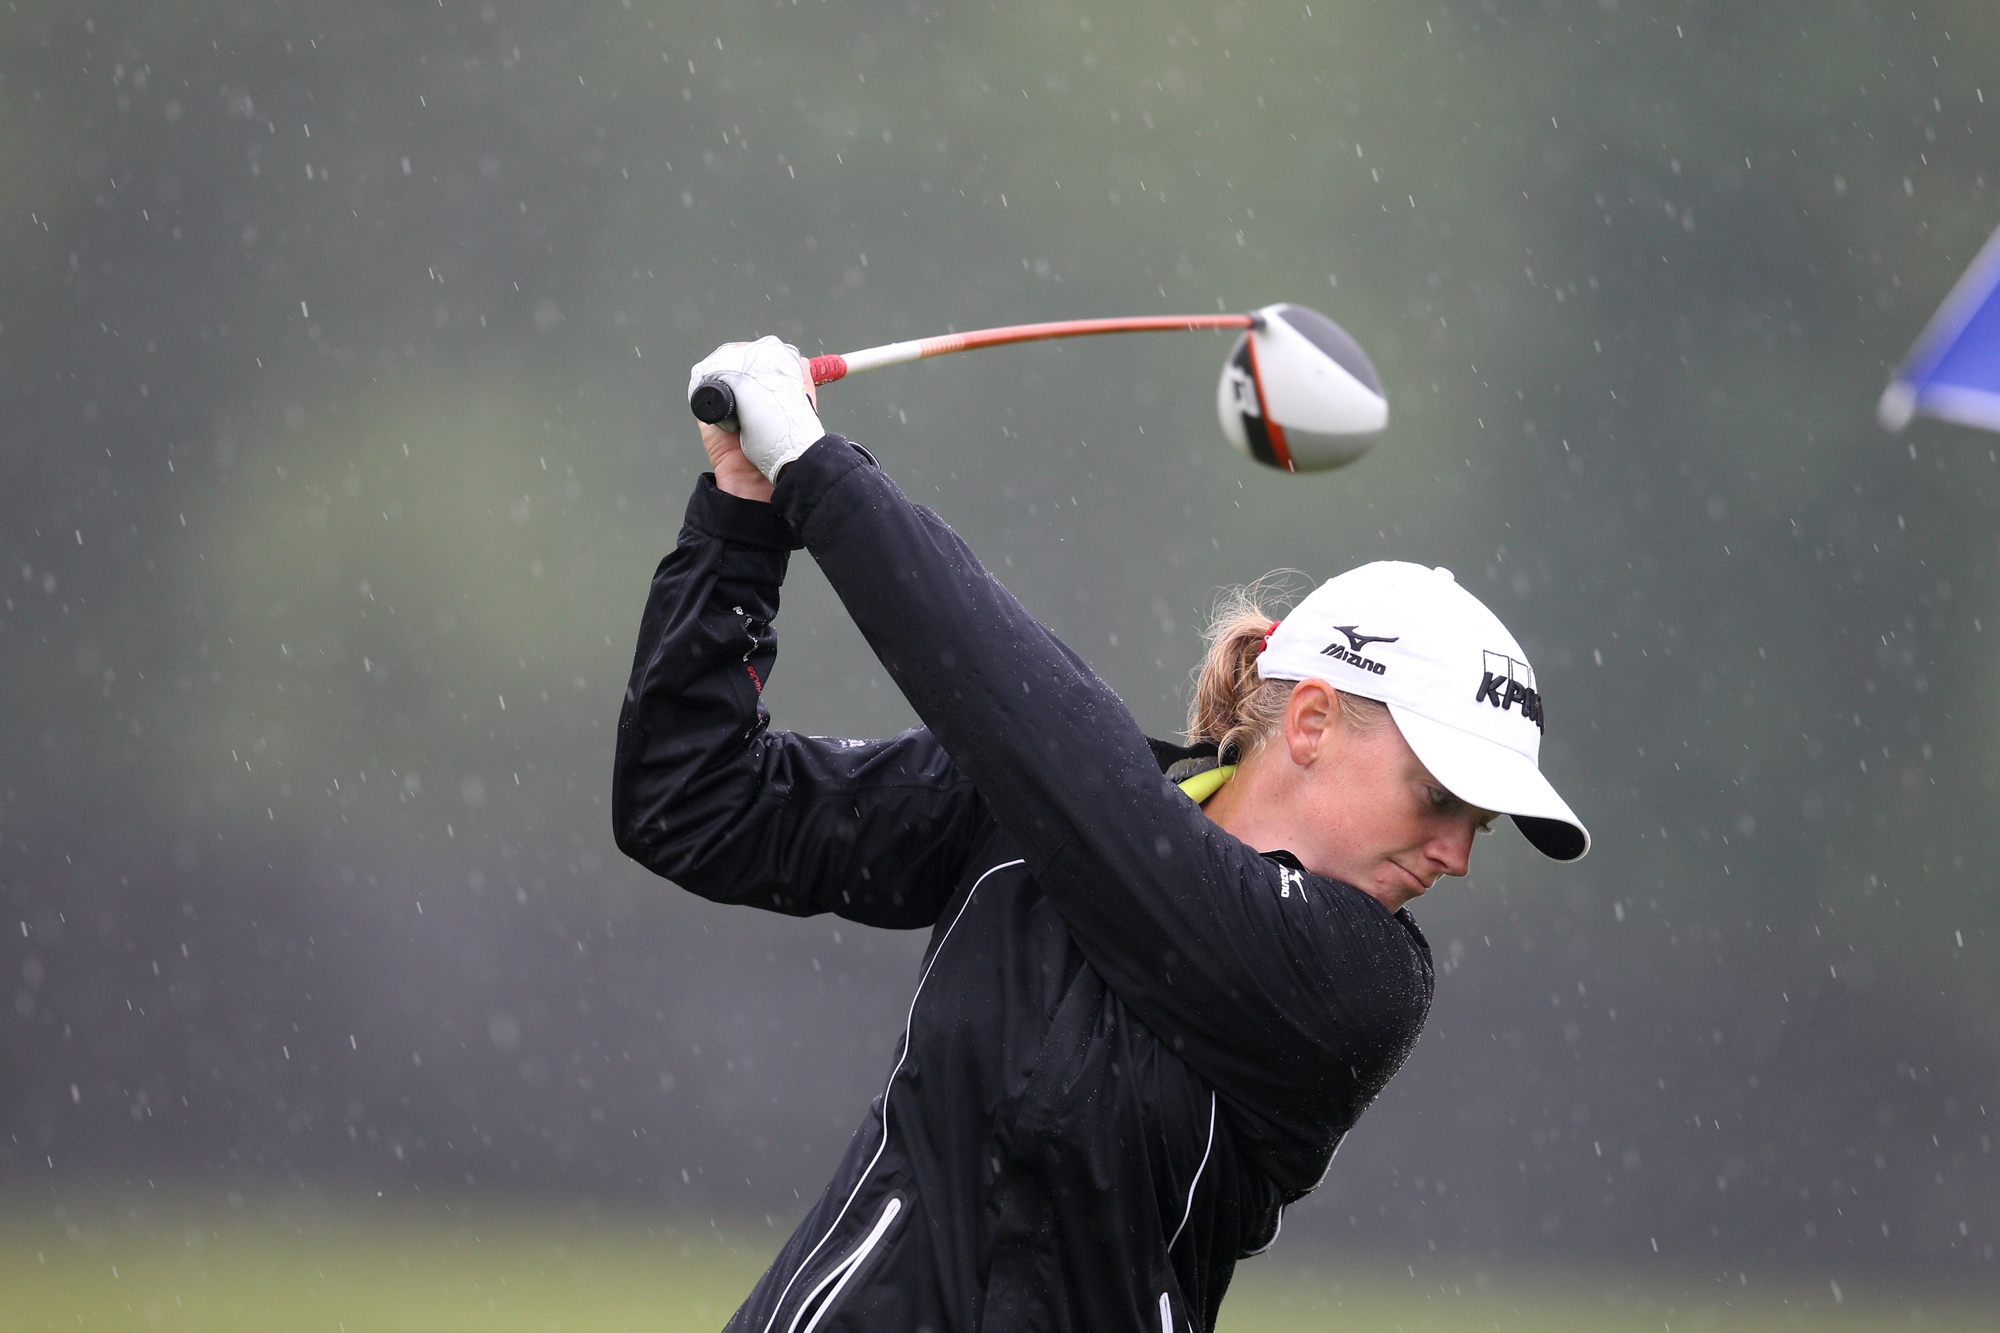 Stacy Lewis swings in the rain at the driving range while waiting for the start of the weather-delayed event at Locust Hill.